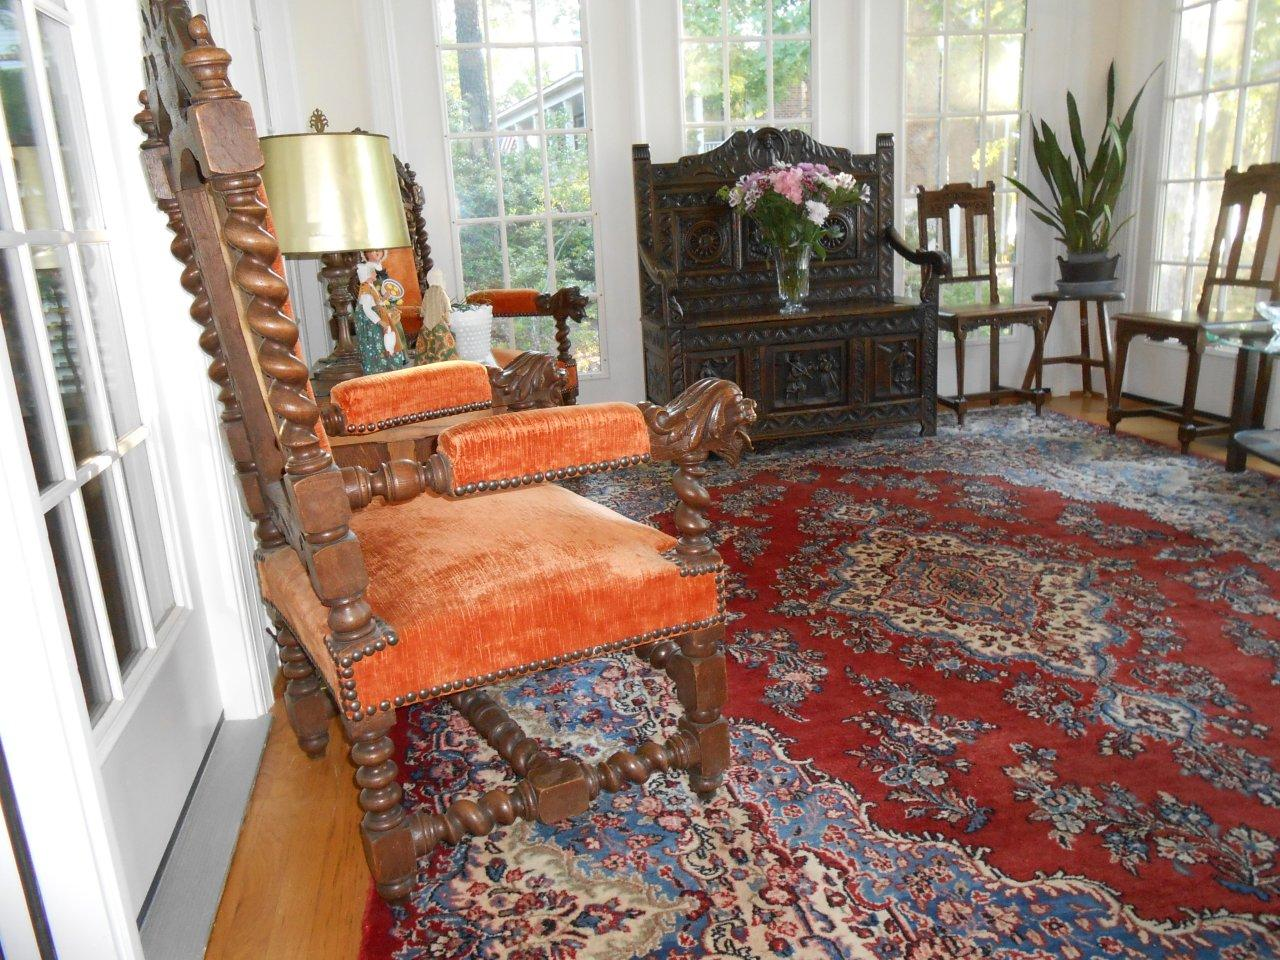 Antique Hunting Thrones in the sun porch